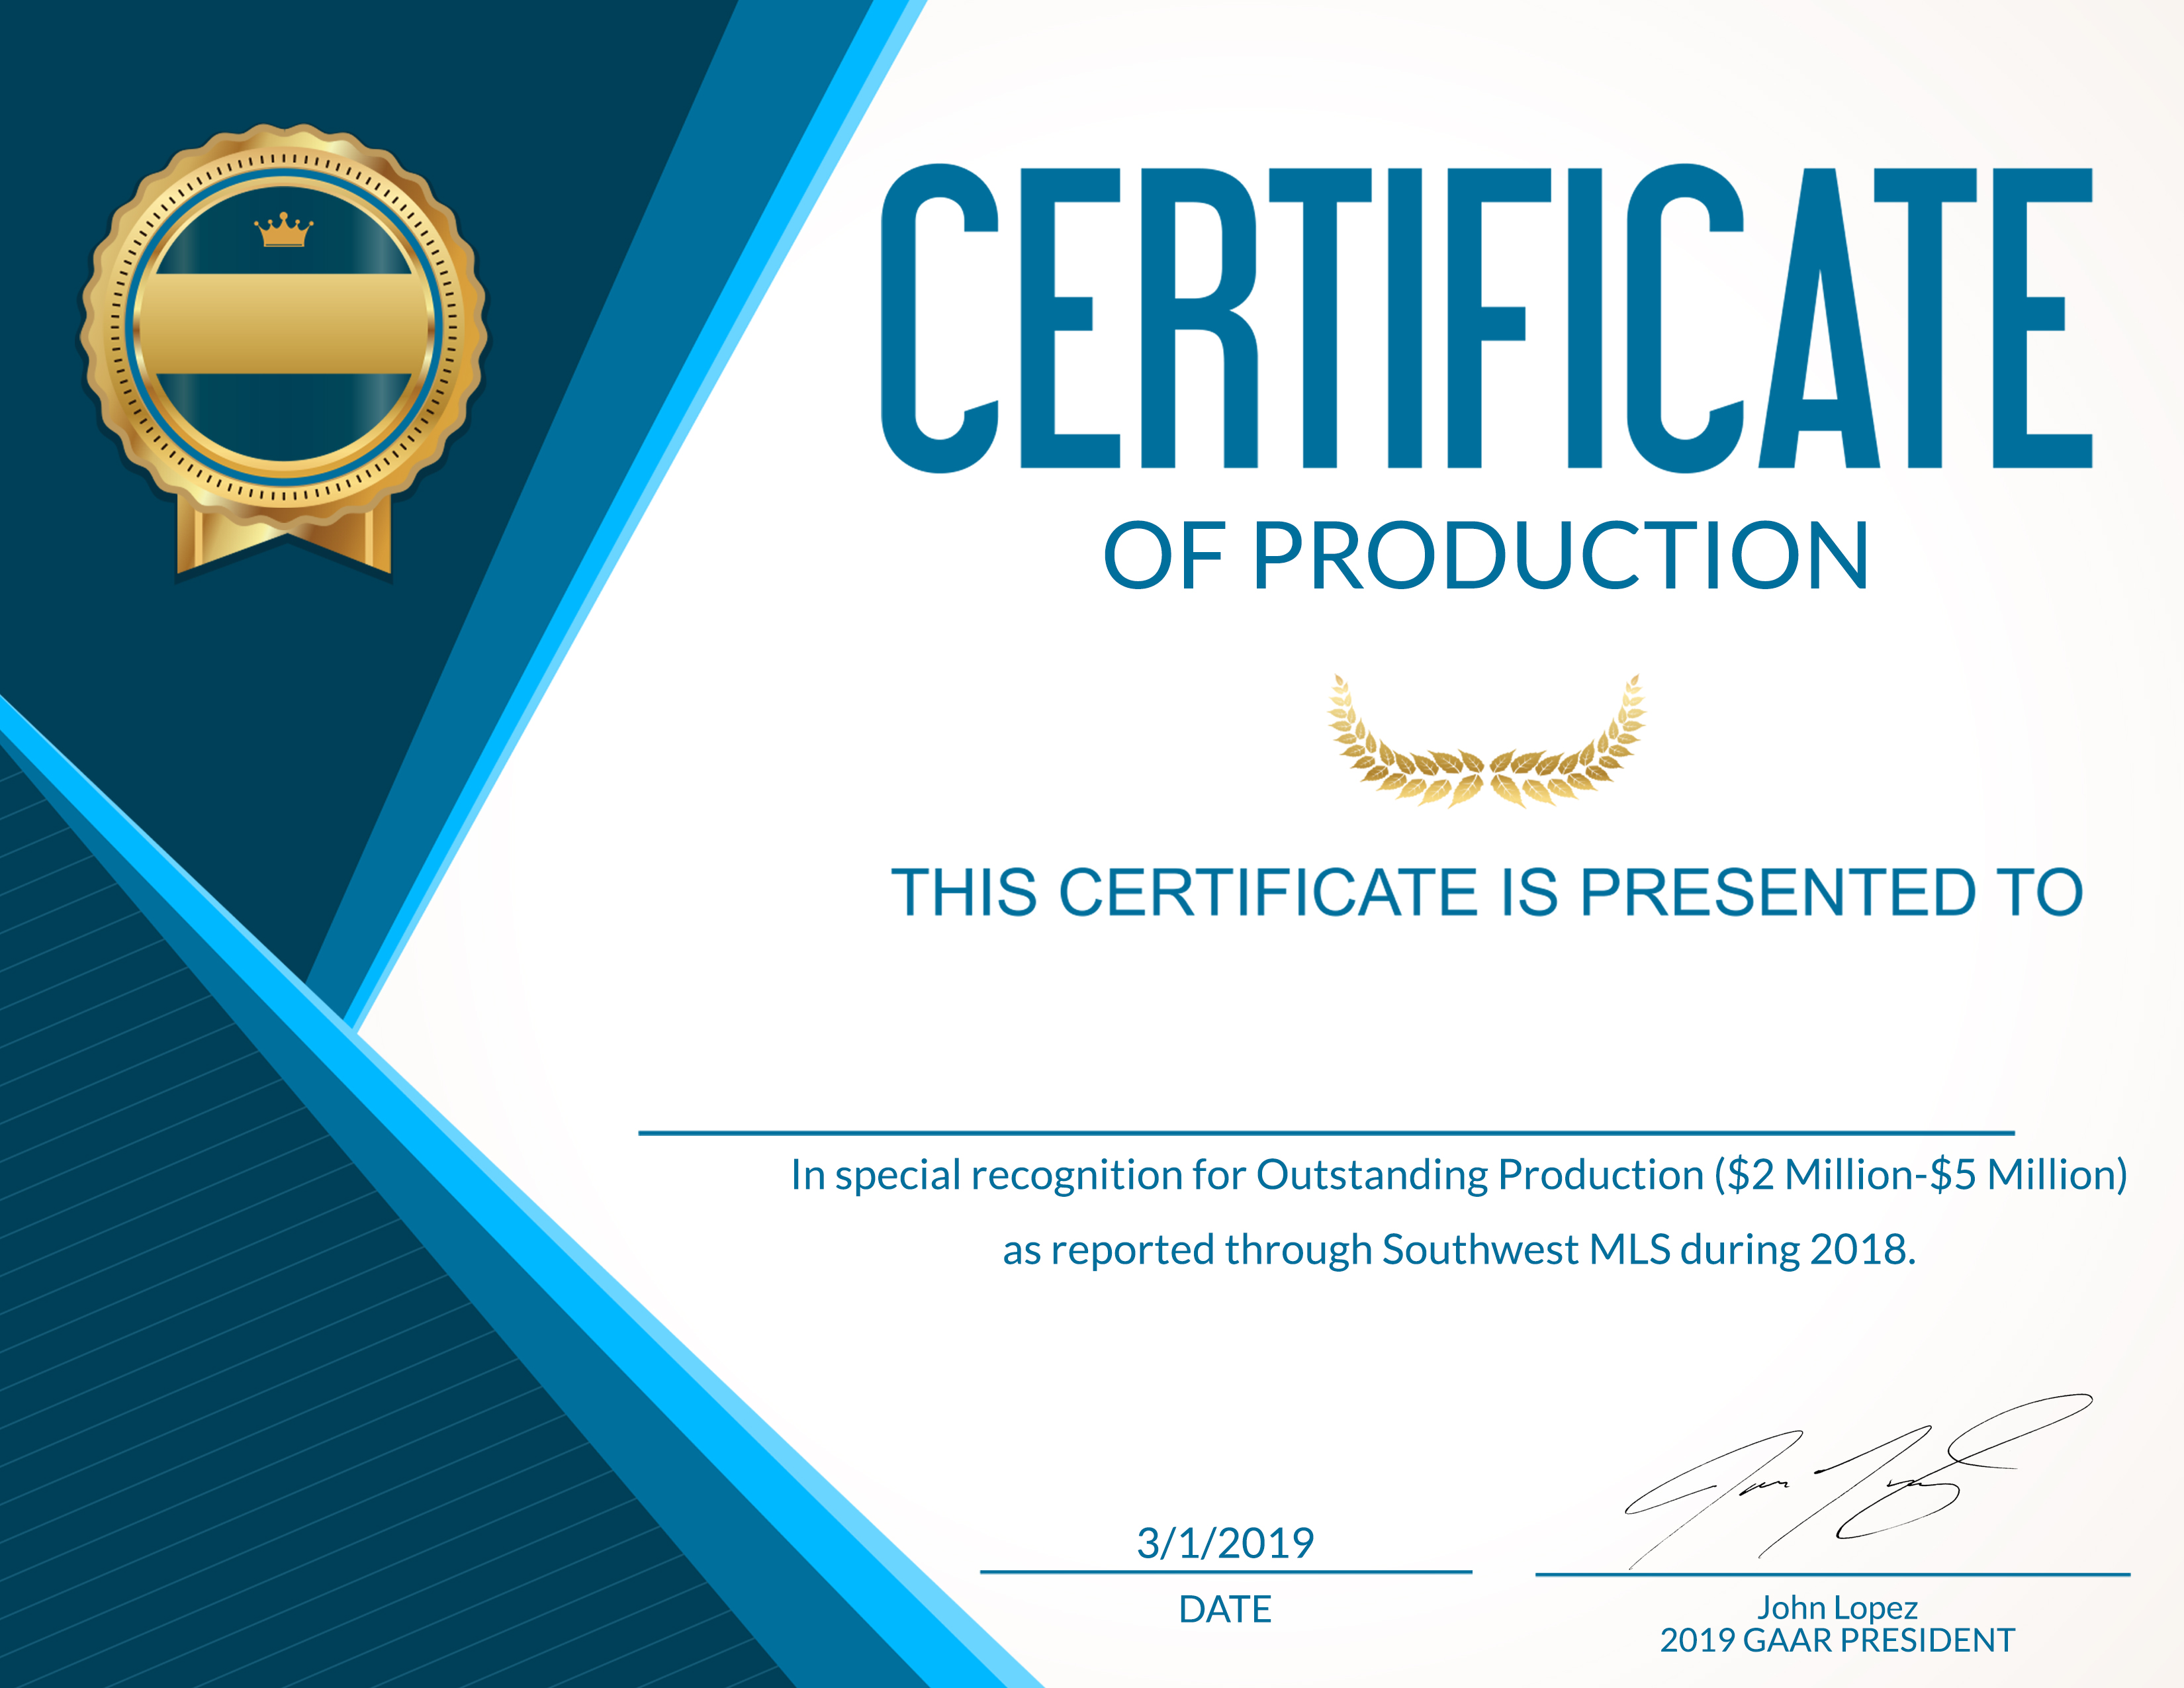 Order your Certificate of Production for 2018